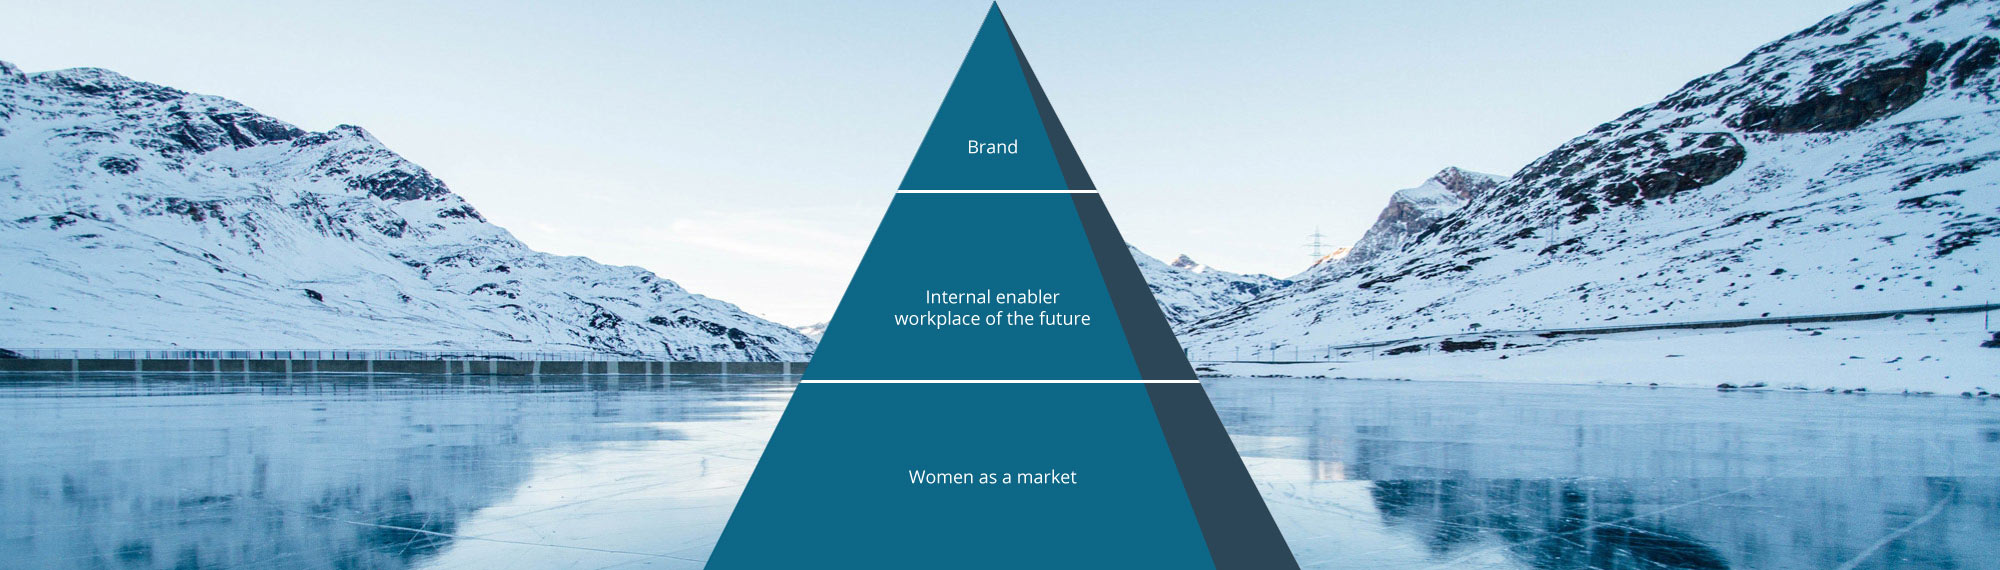 DOIT-smart Gender Diversity Consulting – women as a market